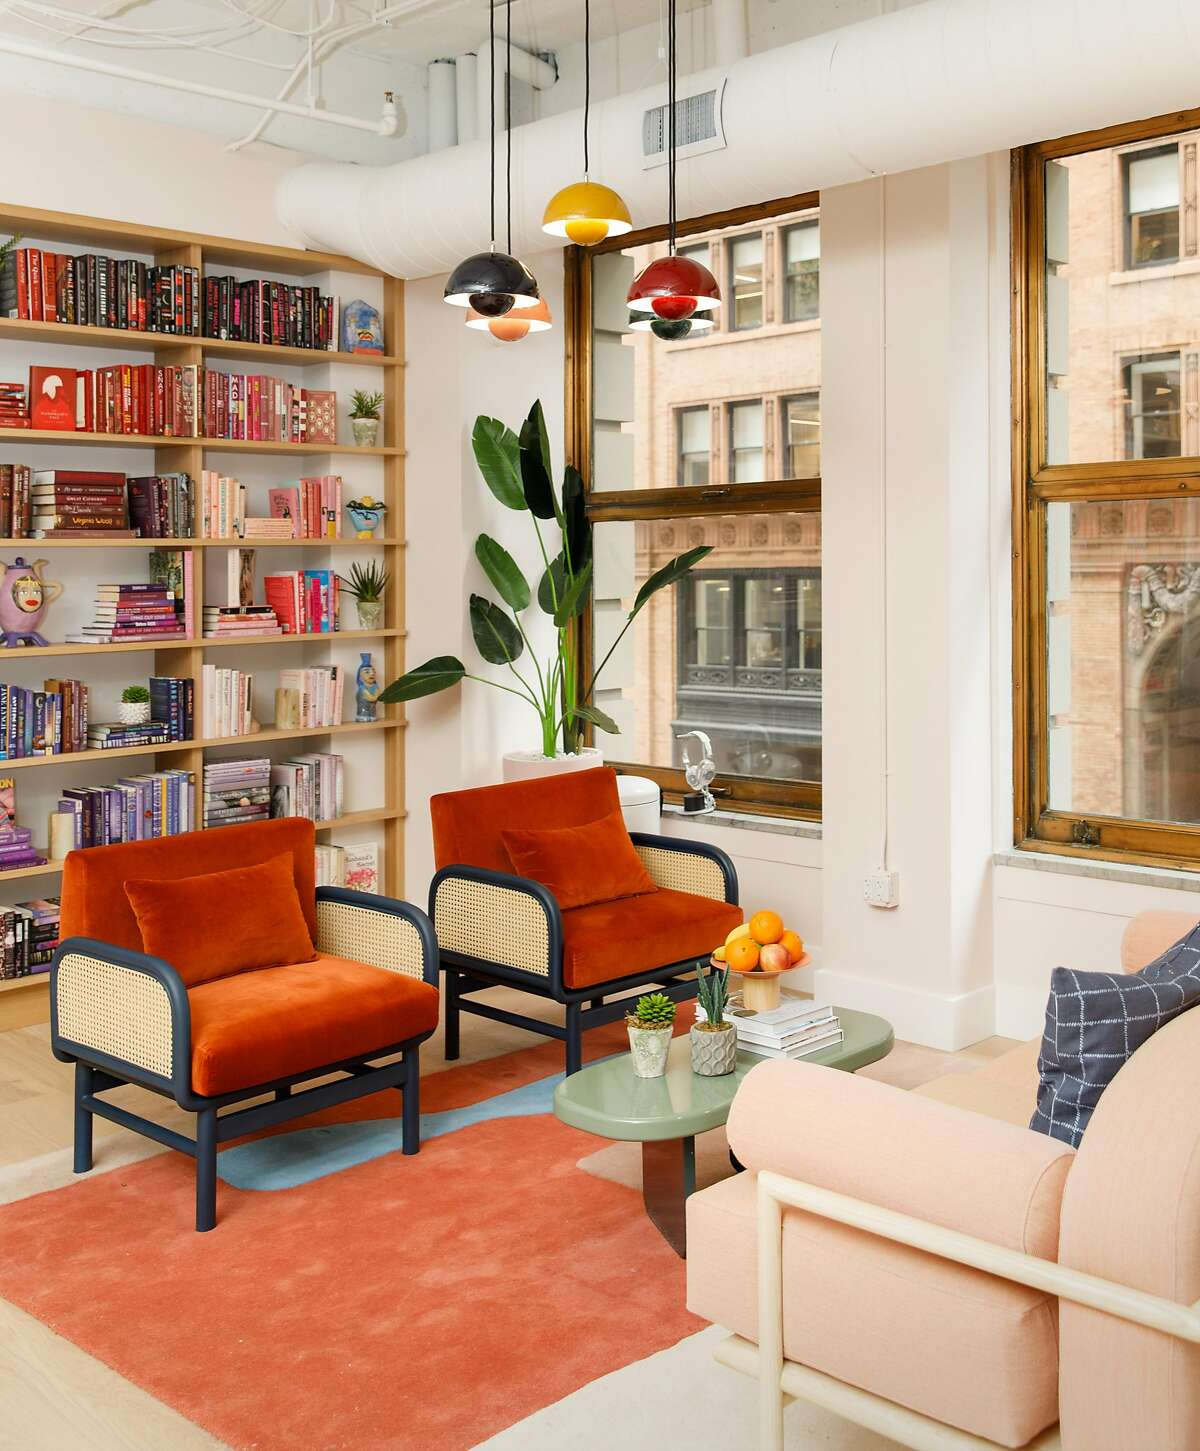 Designed by architect Alda Ly and interior designer Chiara de Rege, the pastel palate synonymous with the Wing's New York and D.C. locations is present in San Francisco but differentiated by rich, warm apricots, mustards and burgundies.